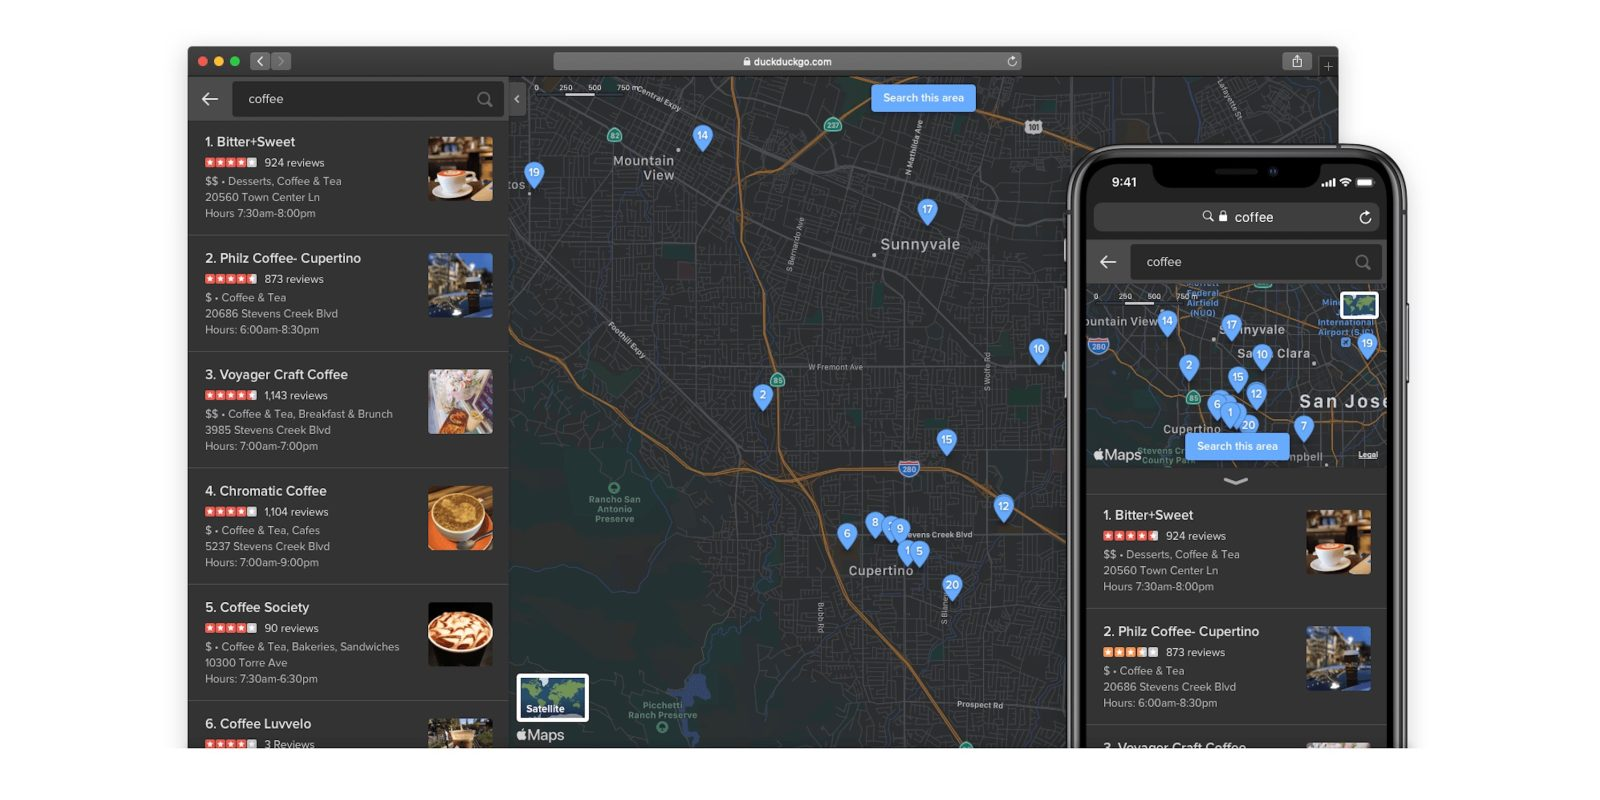 DuckDuckGo's Apple Maps integration now supports dark mode, re-querying, more